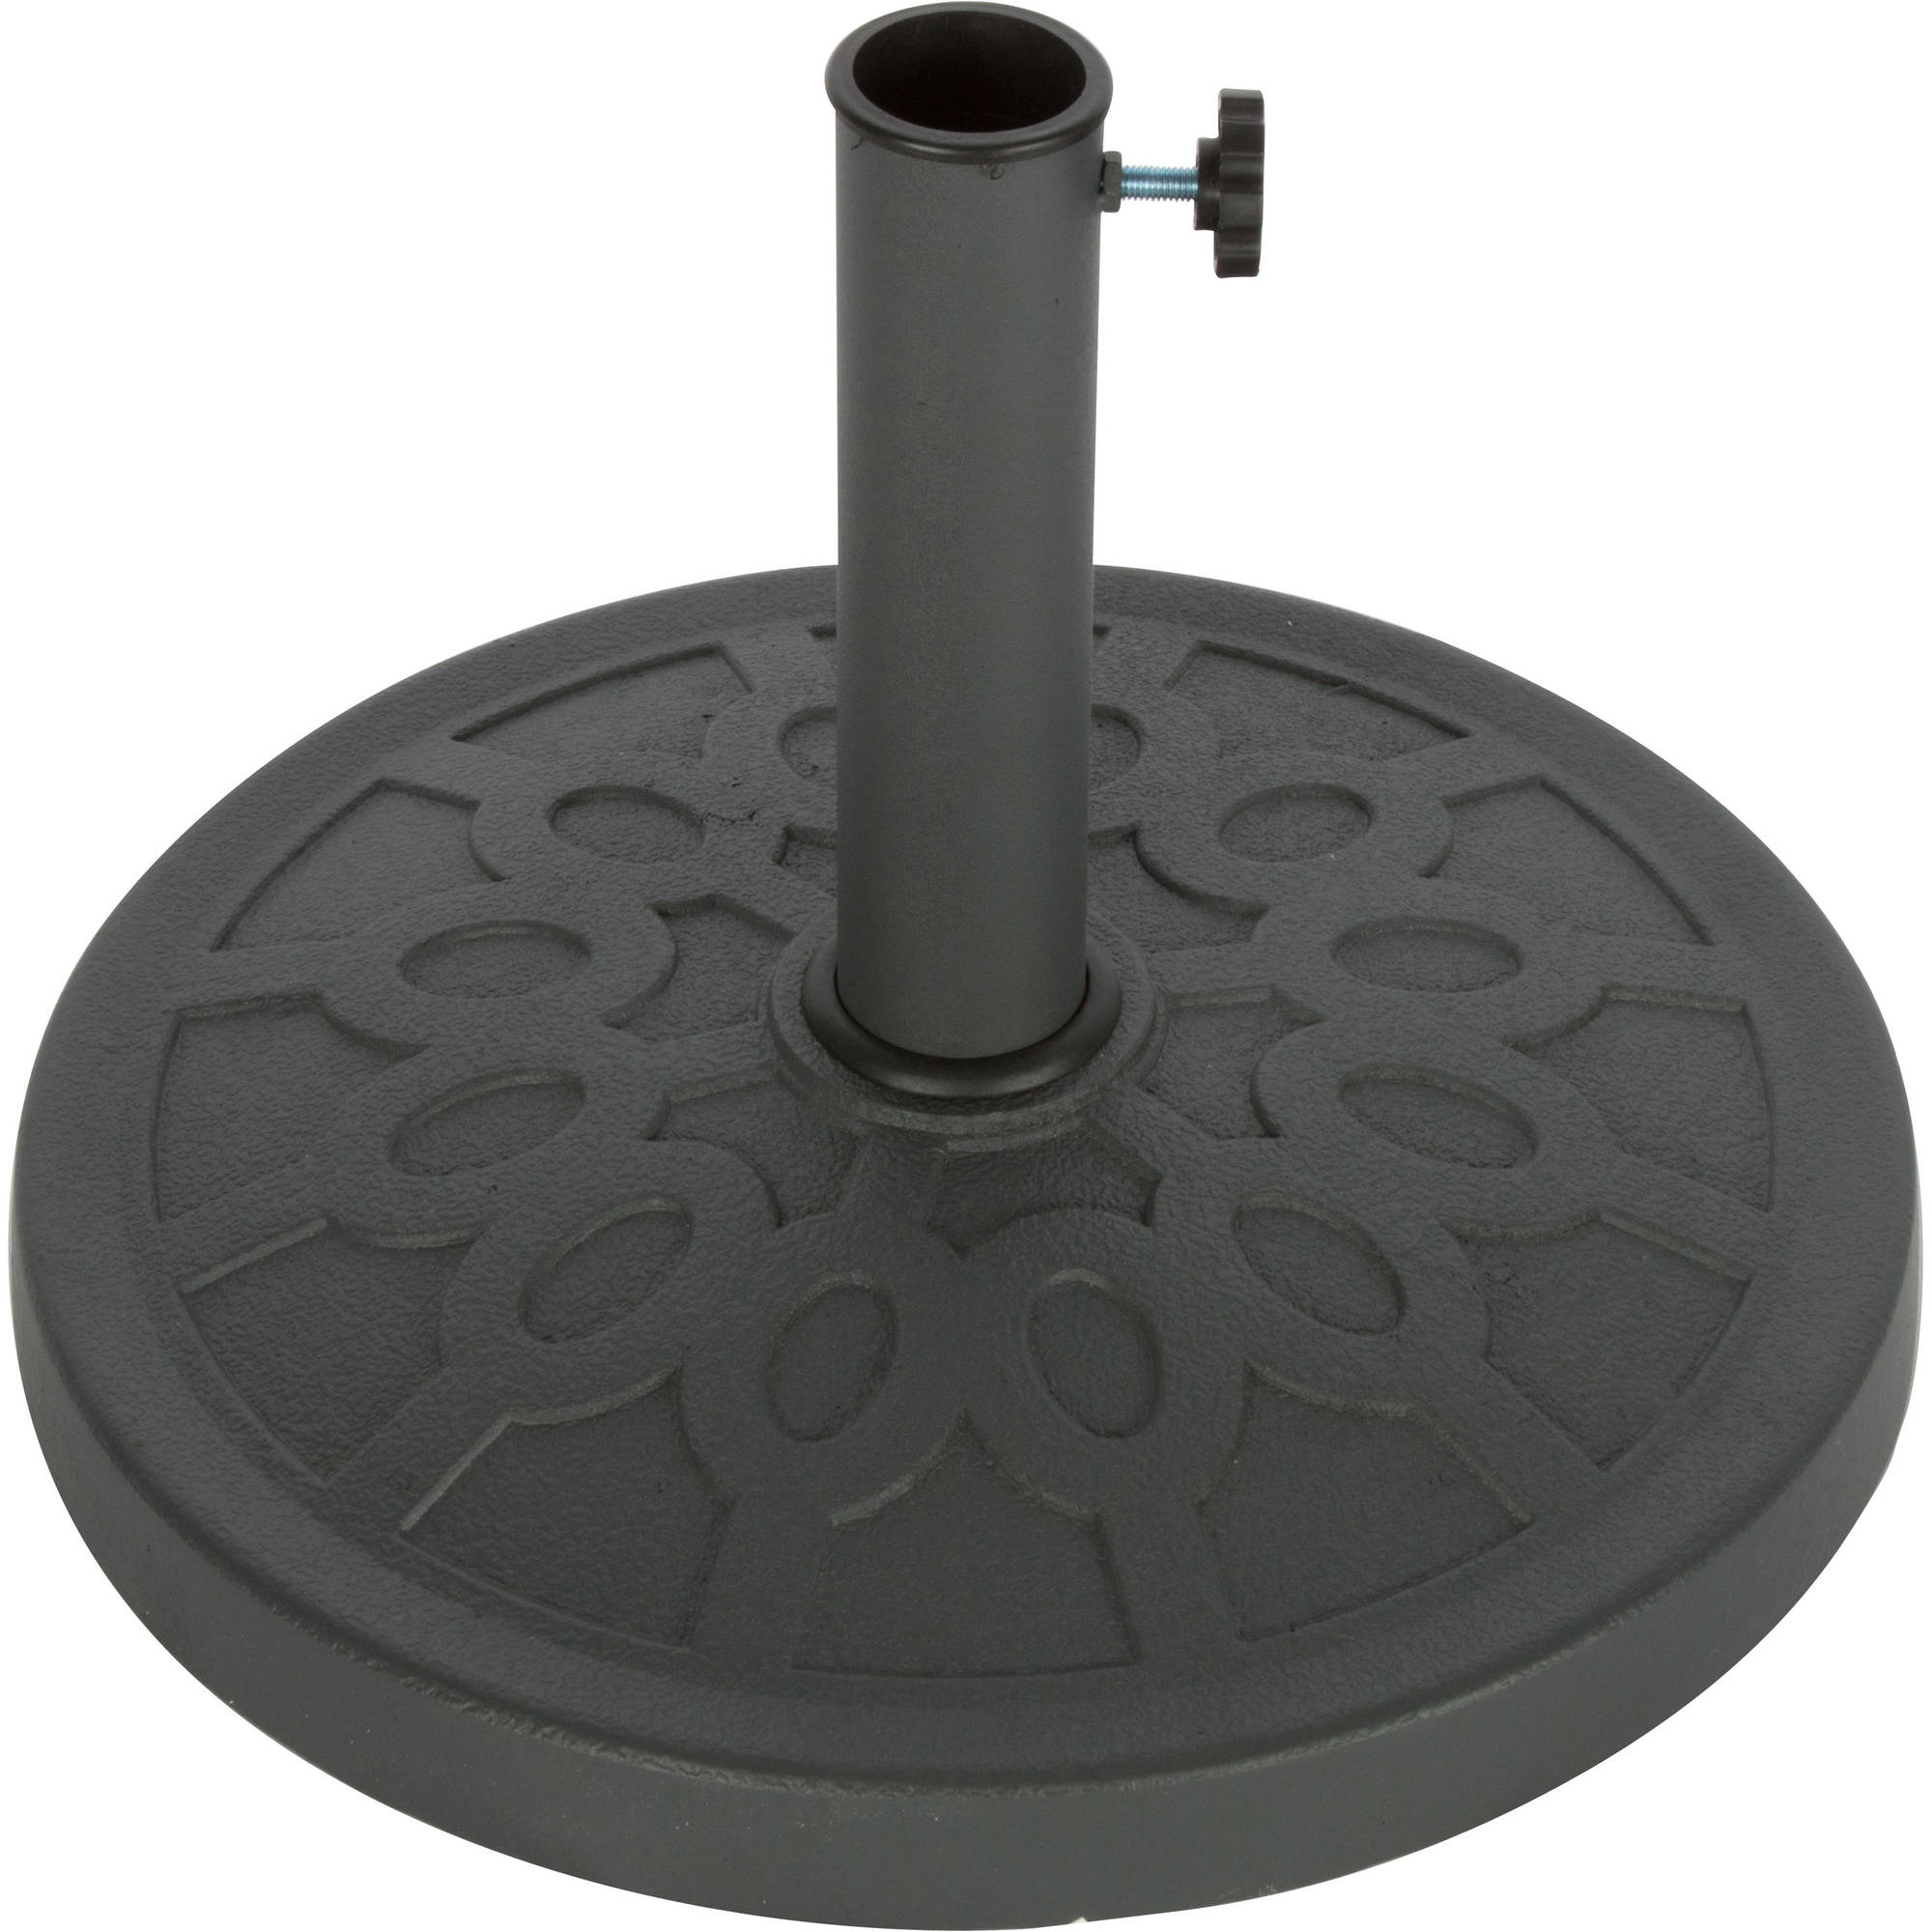 "Trademark Innovations Decorative Resin Umbrella Base, 17.5"" Diameter"